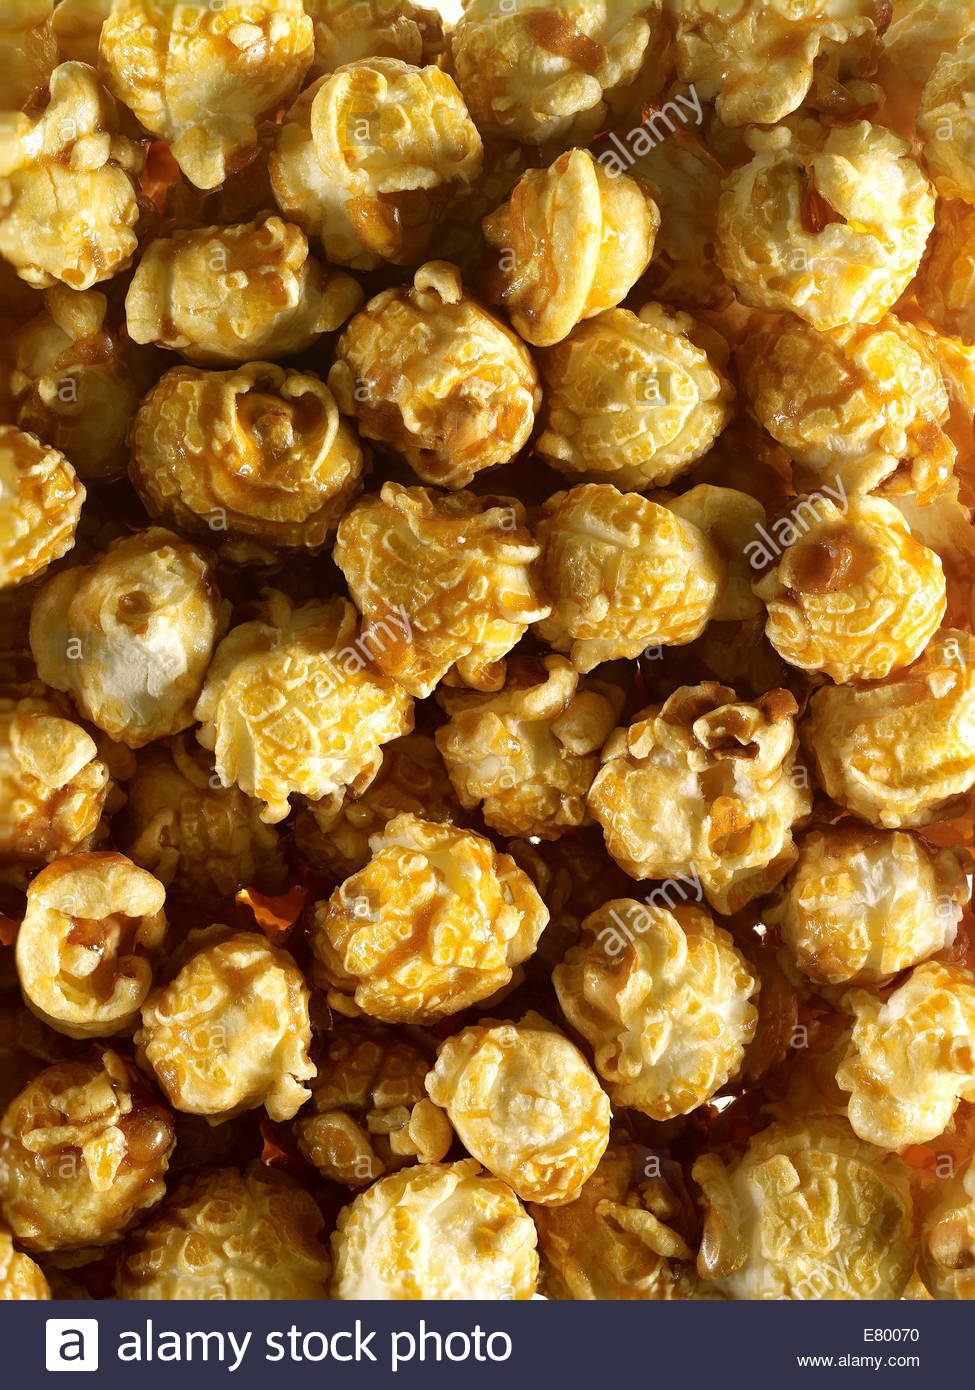 Raw dried un-popped Corn or natural popcorn kernels as background. - Stock Image